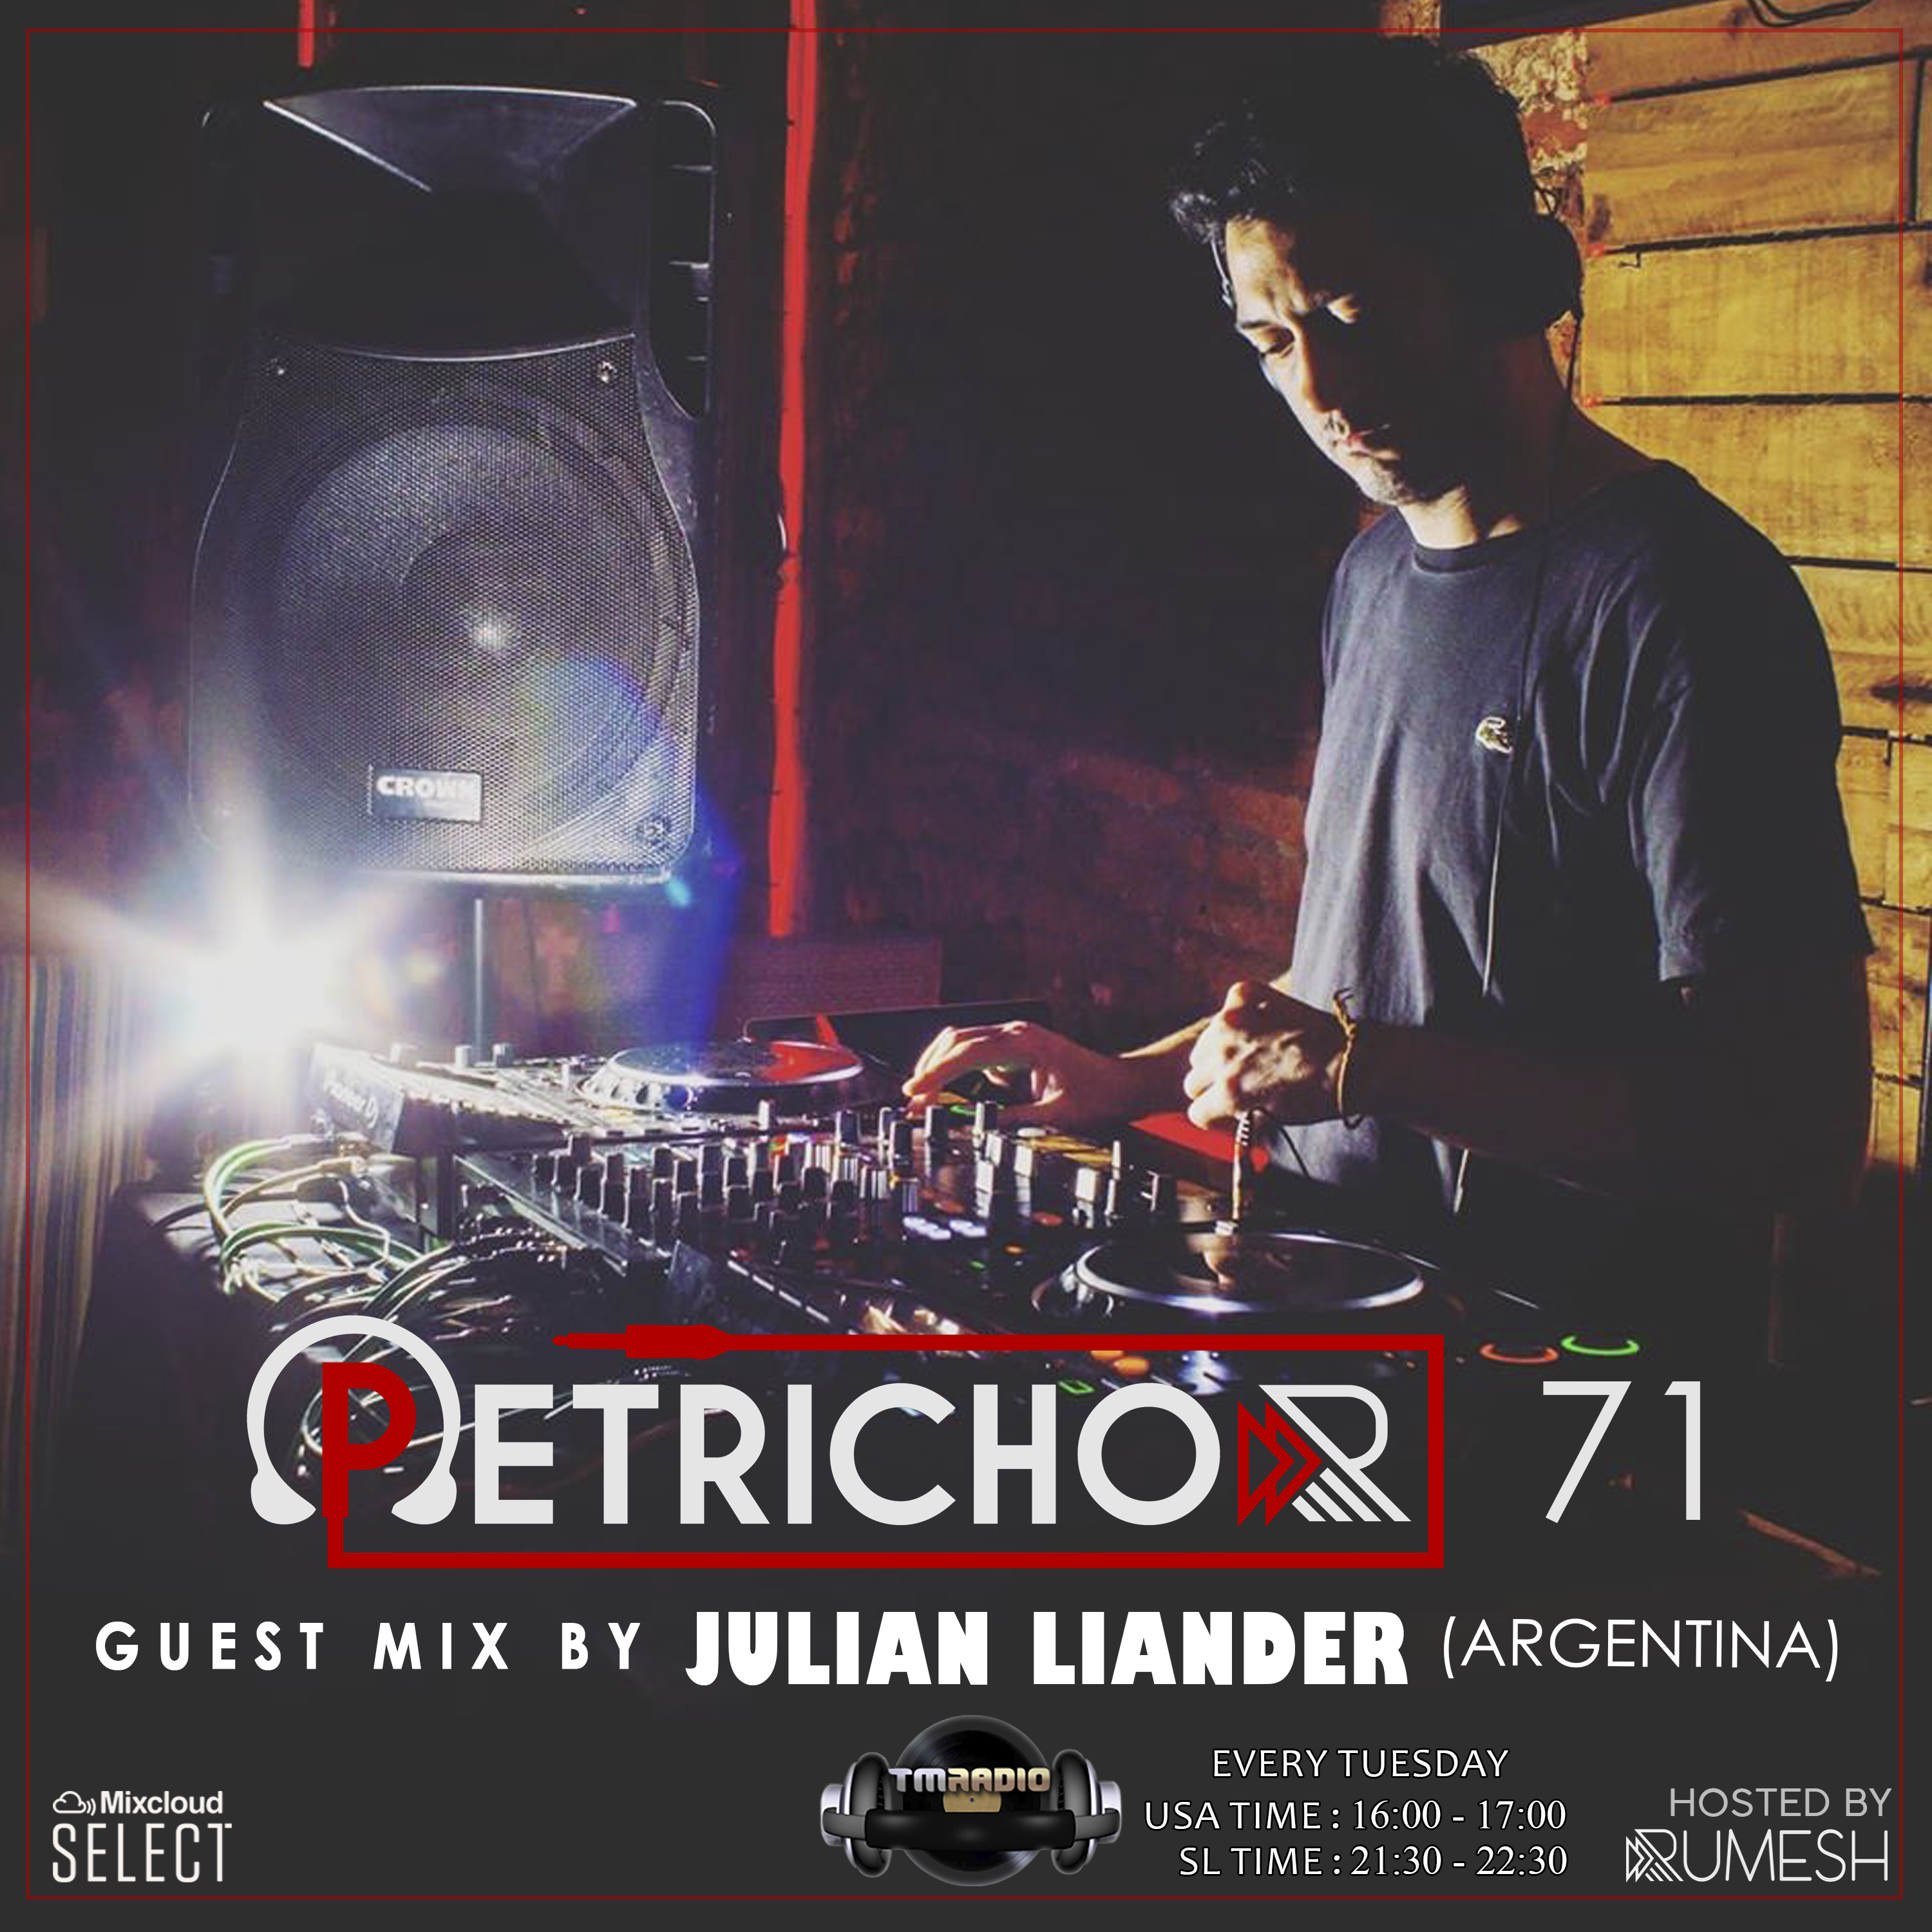 Petrichor :: Petrichor 71 Guest Mix by Julian Liander (Argentina) (aired on March 17th, 2020) banner logo